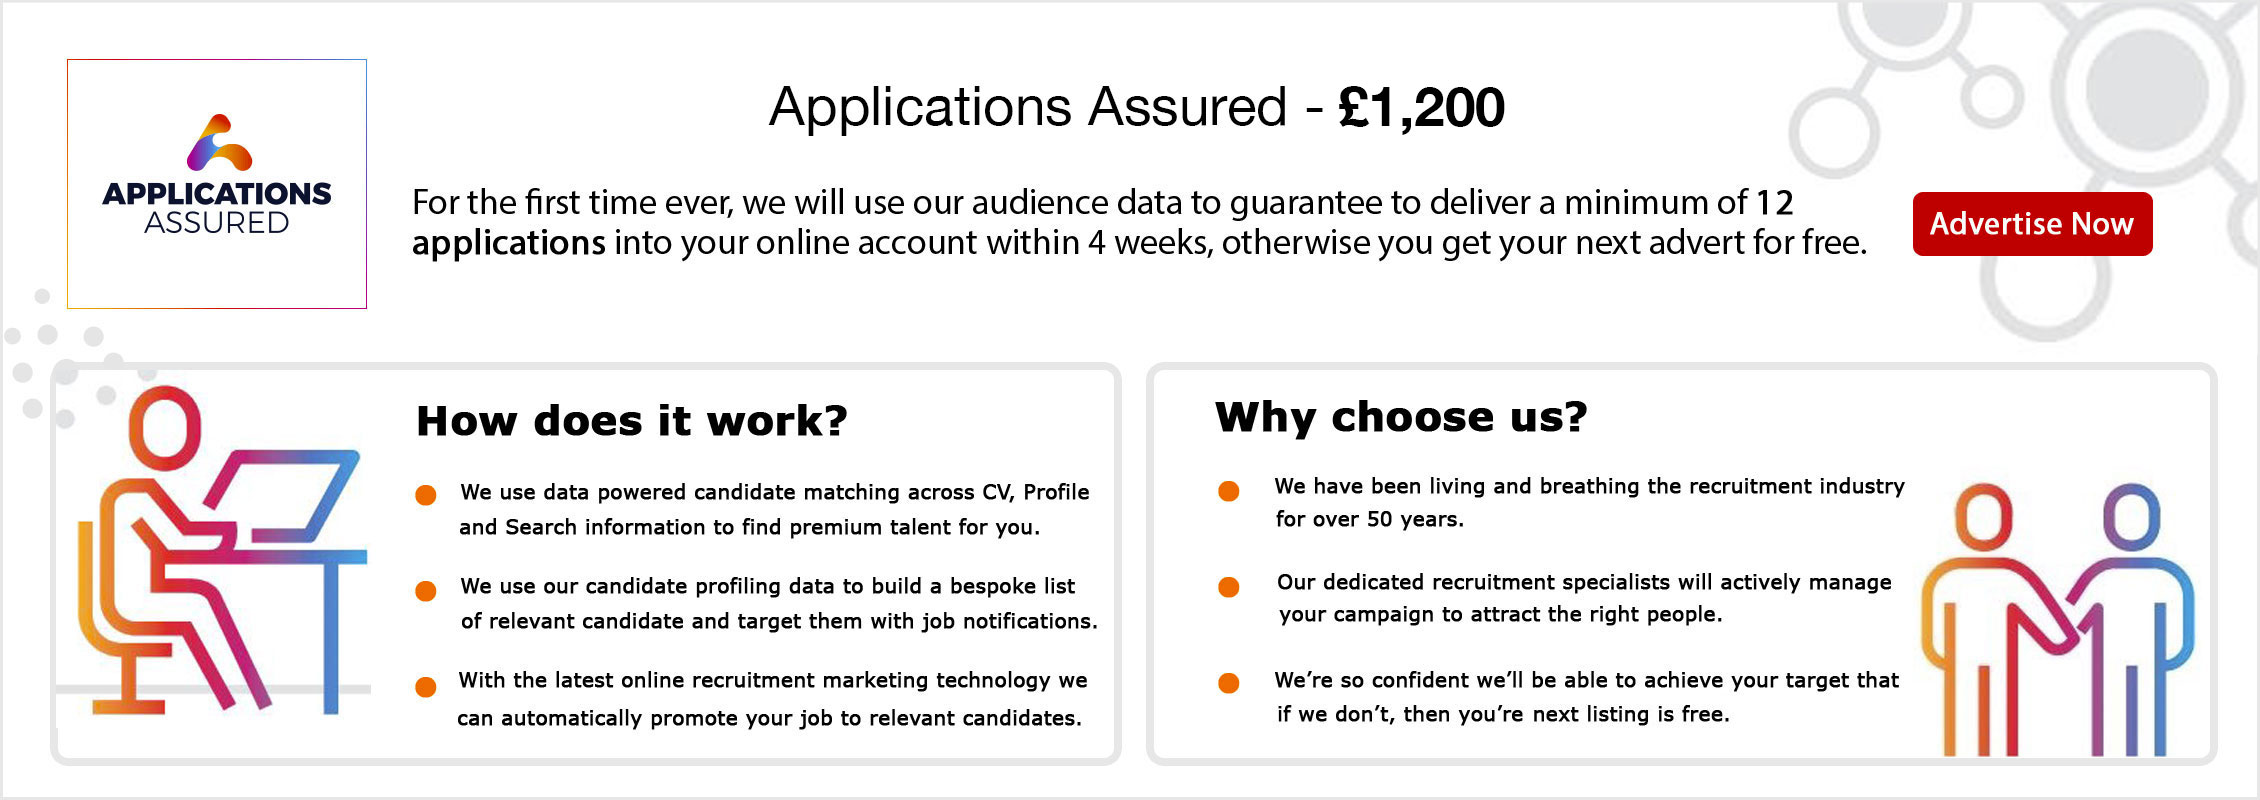 Applications Assured. £1,200. We use our audience data to guarantee to deliver a minimum of 12 applications into your online account within 4 weeks, otherwise you get your next advert for free. Advertise Now. How does it work? We use data powered candidate matching across CV, Profile and Search information to find premium talent for you. We use our candidate profiling data to build a bespoke list of relevant candidates and target them with job notifications. With the latest online recruitment marketing technology we can automatically promote your job. Why choose us? We have been living and breathing the recruitment industry for over 50 years. Our dedicated recruitment specialists will actively manage your campaign to attract the right people.